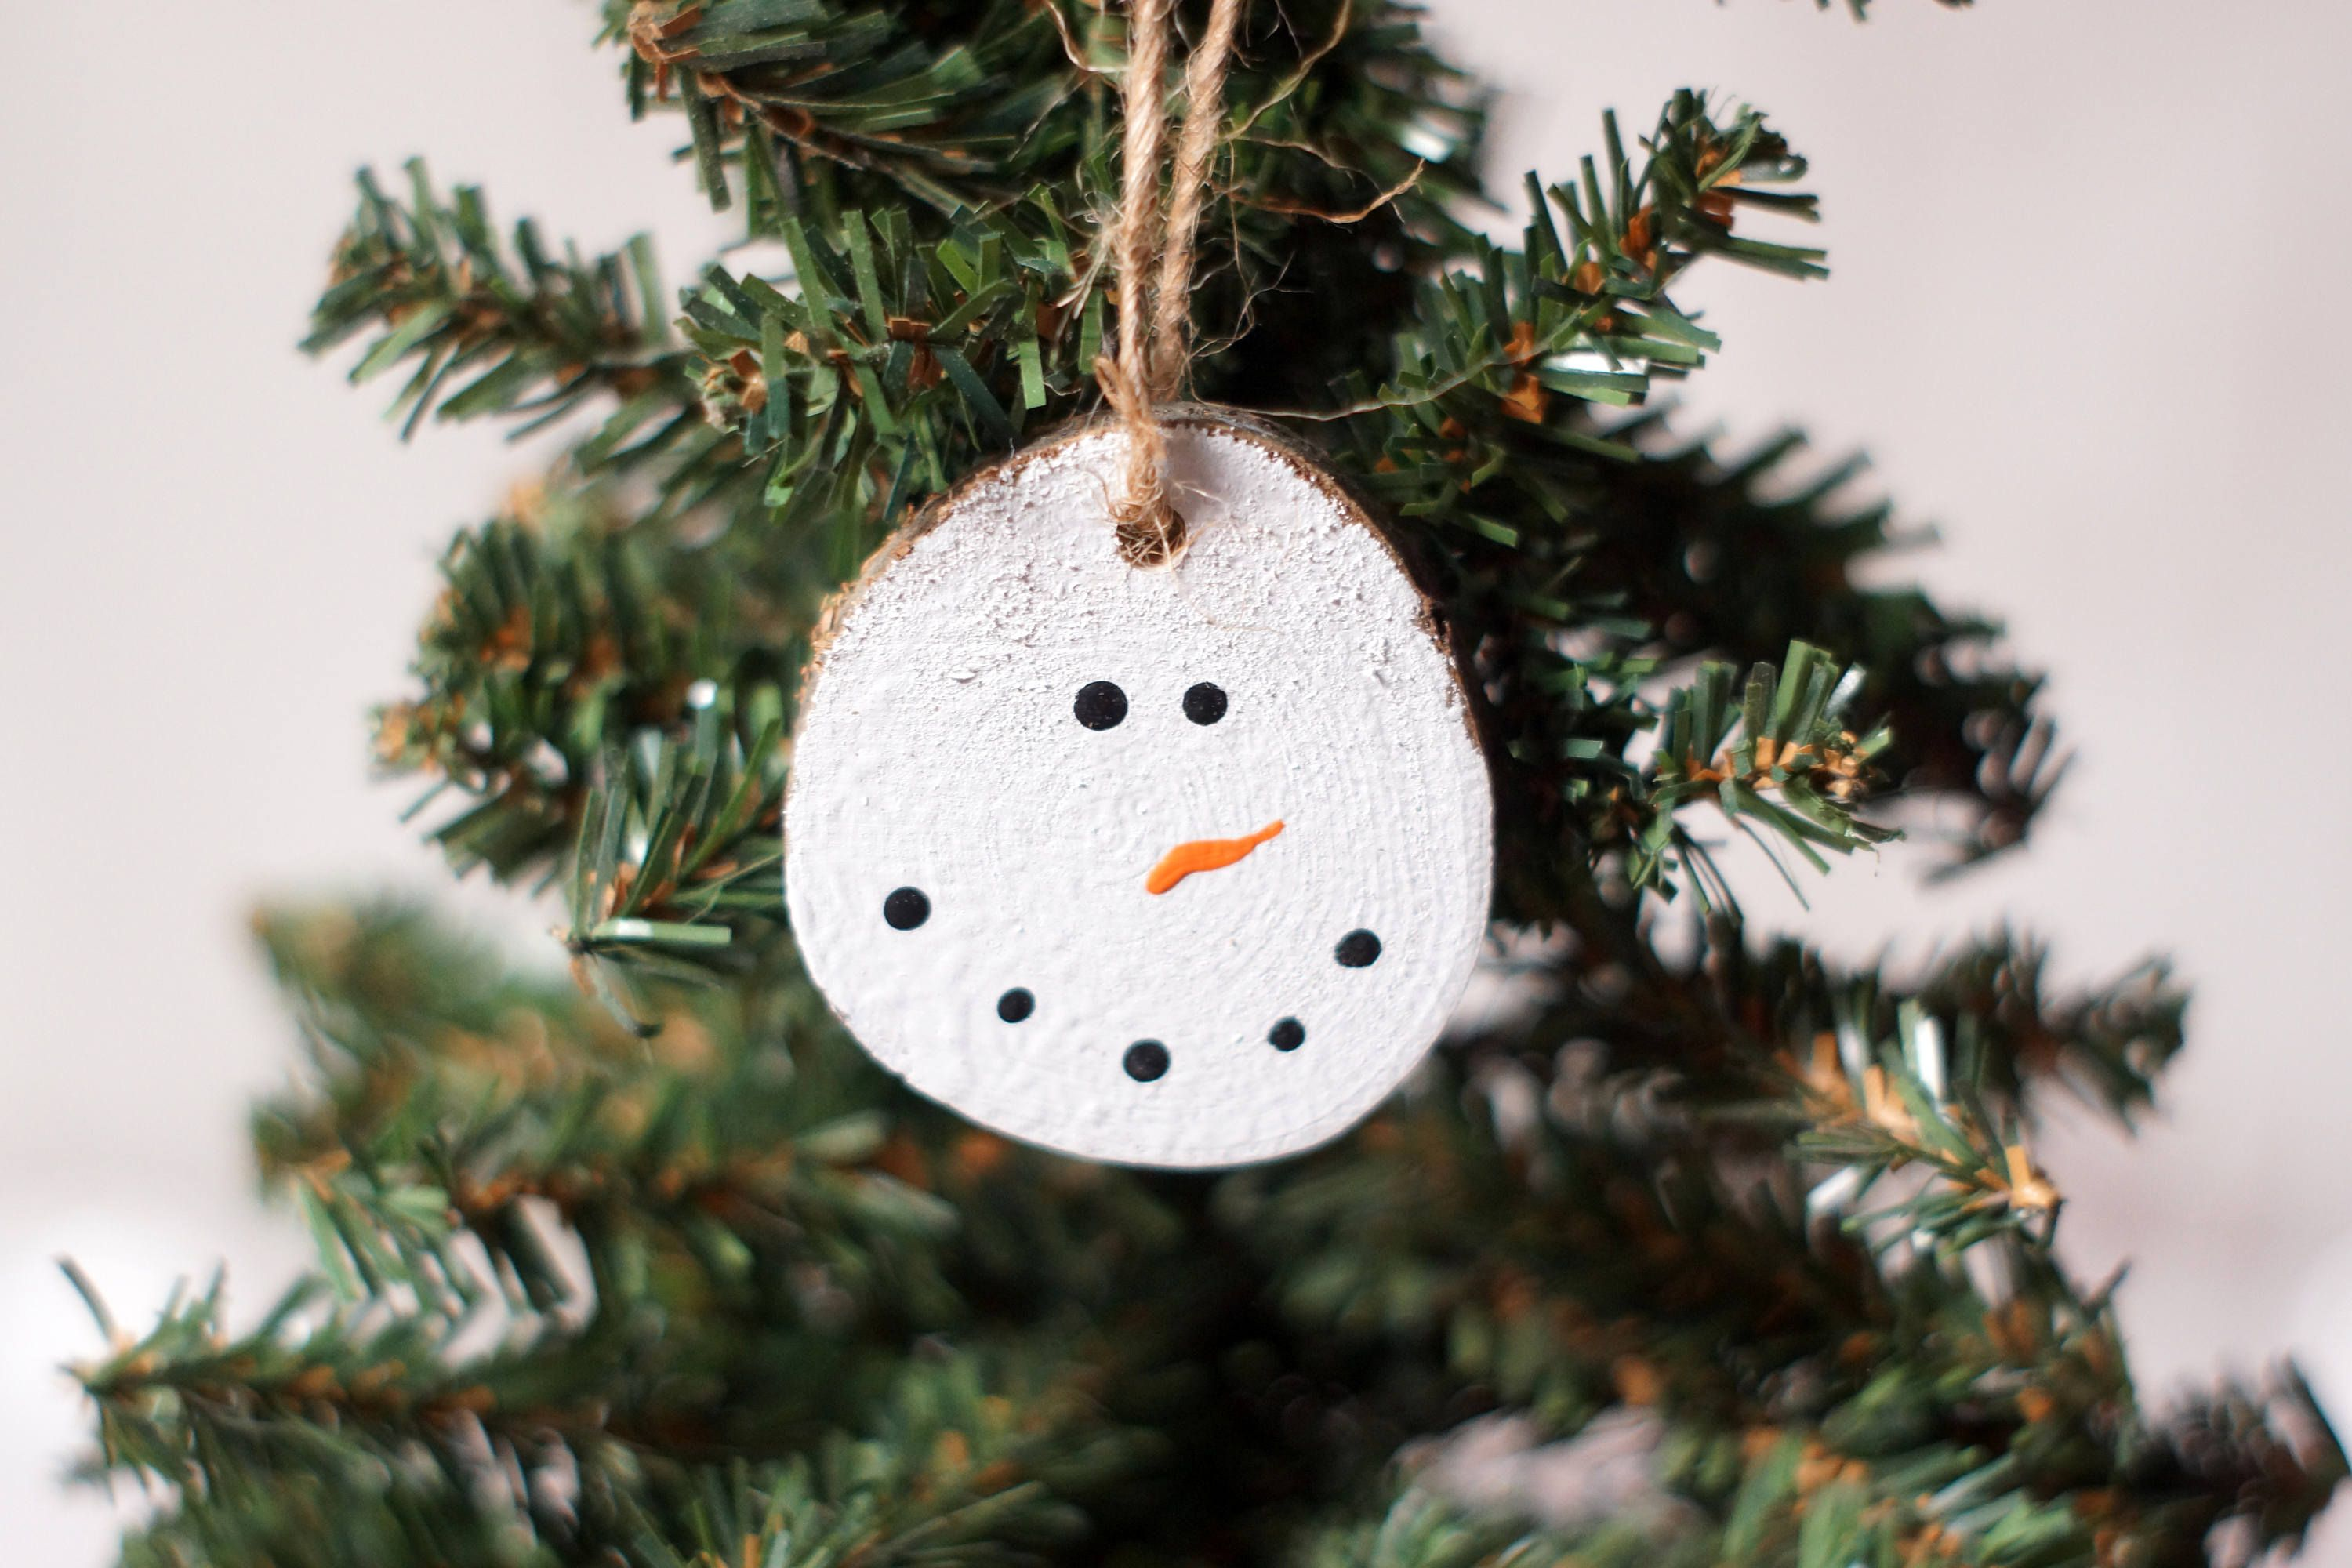 Snowman Ornaments Hand Painted Ornament Set Rustic Christmas Decorations White Christmas Christmas Decorations Rustic Hand Painted Ornaments Ornament Gifts